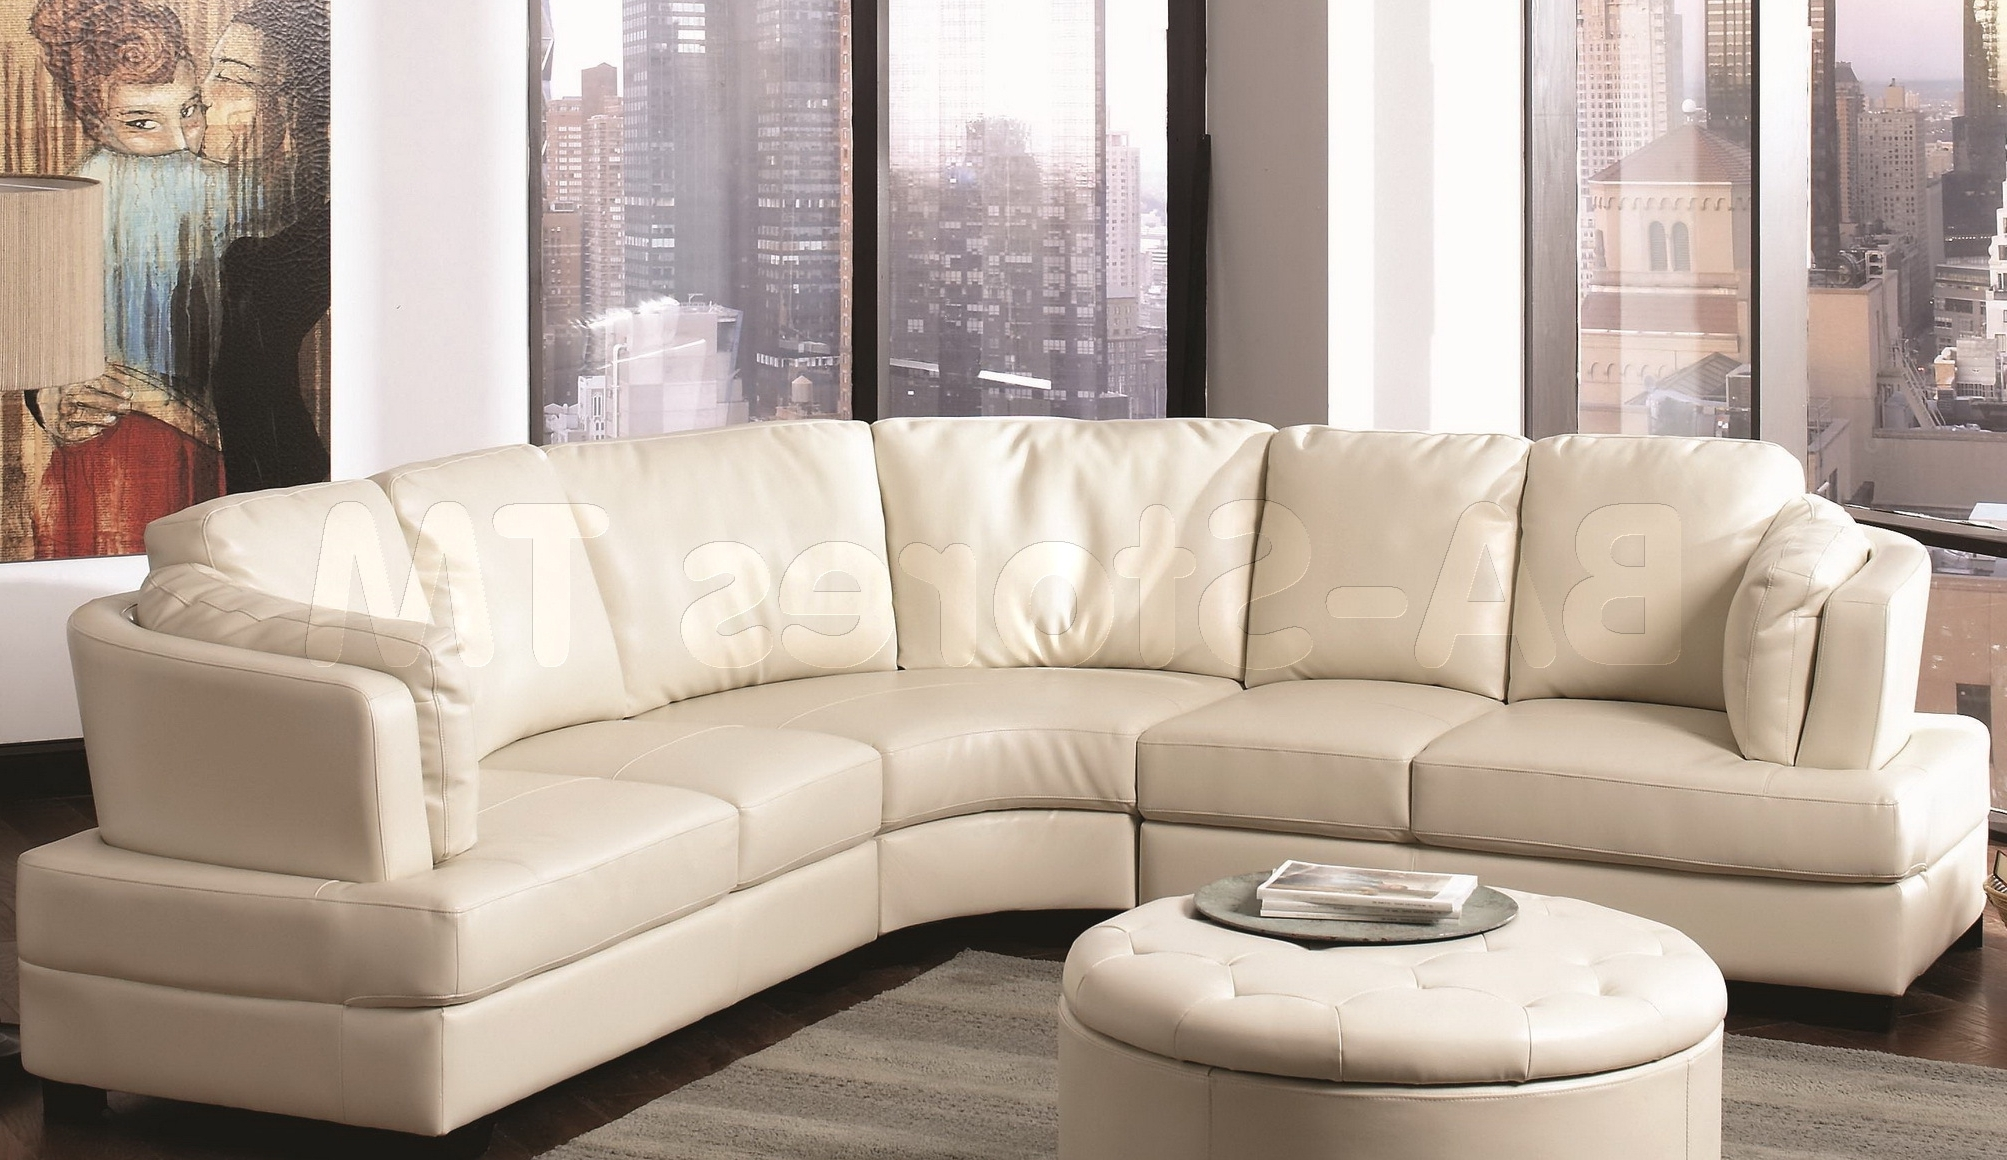 Cheap Sectional Throughout Most Up To Date Kmart Sectional Sofas (View 3 of 20)